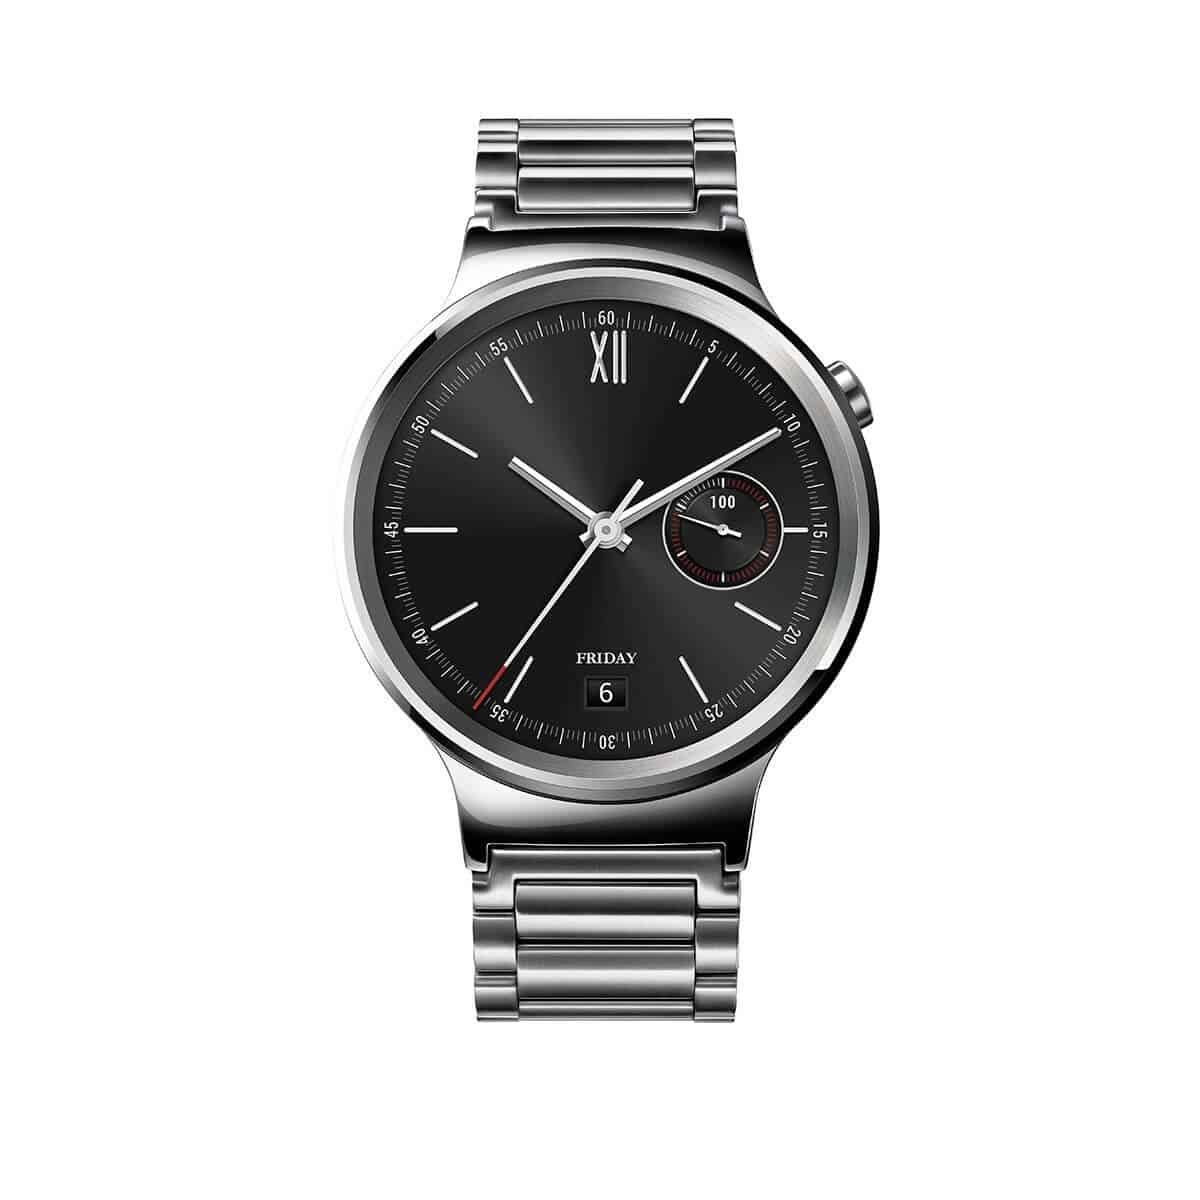 Holiday tech gift ideas 2016 2017 huawei watch androidheadlines com